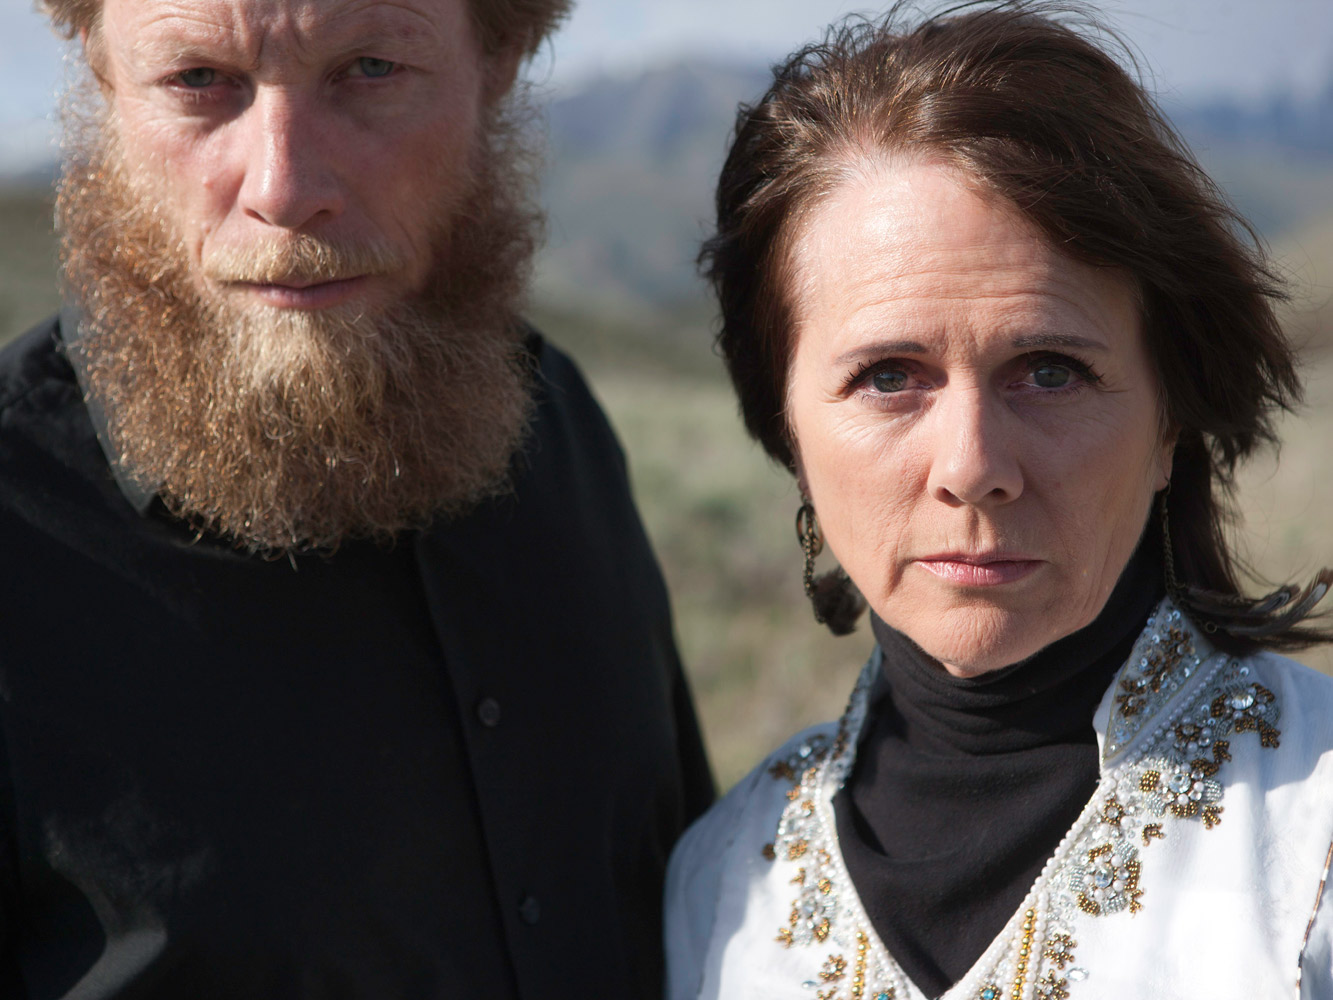 Robert and Jani Bergdahl shown in their home town of Hailey, Idaho.